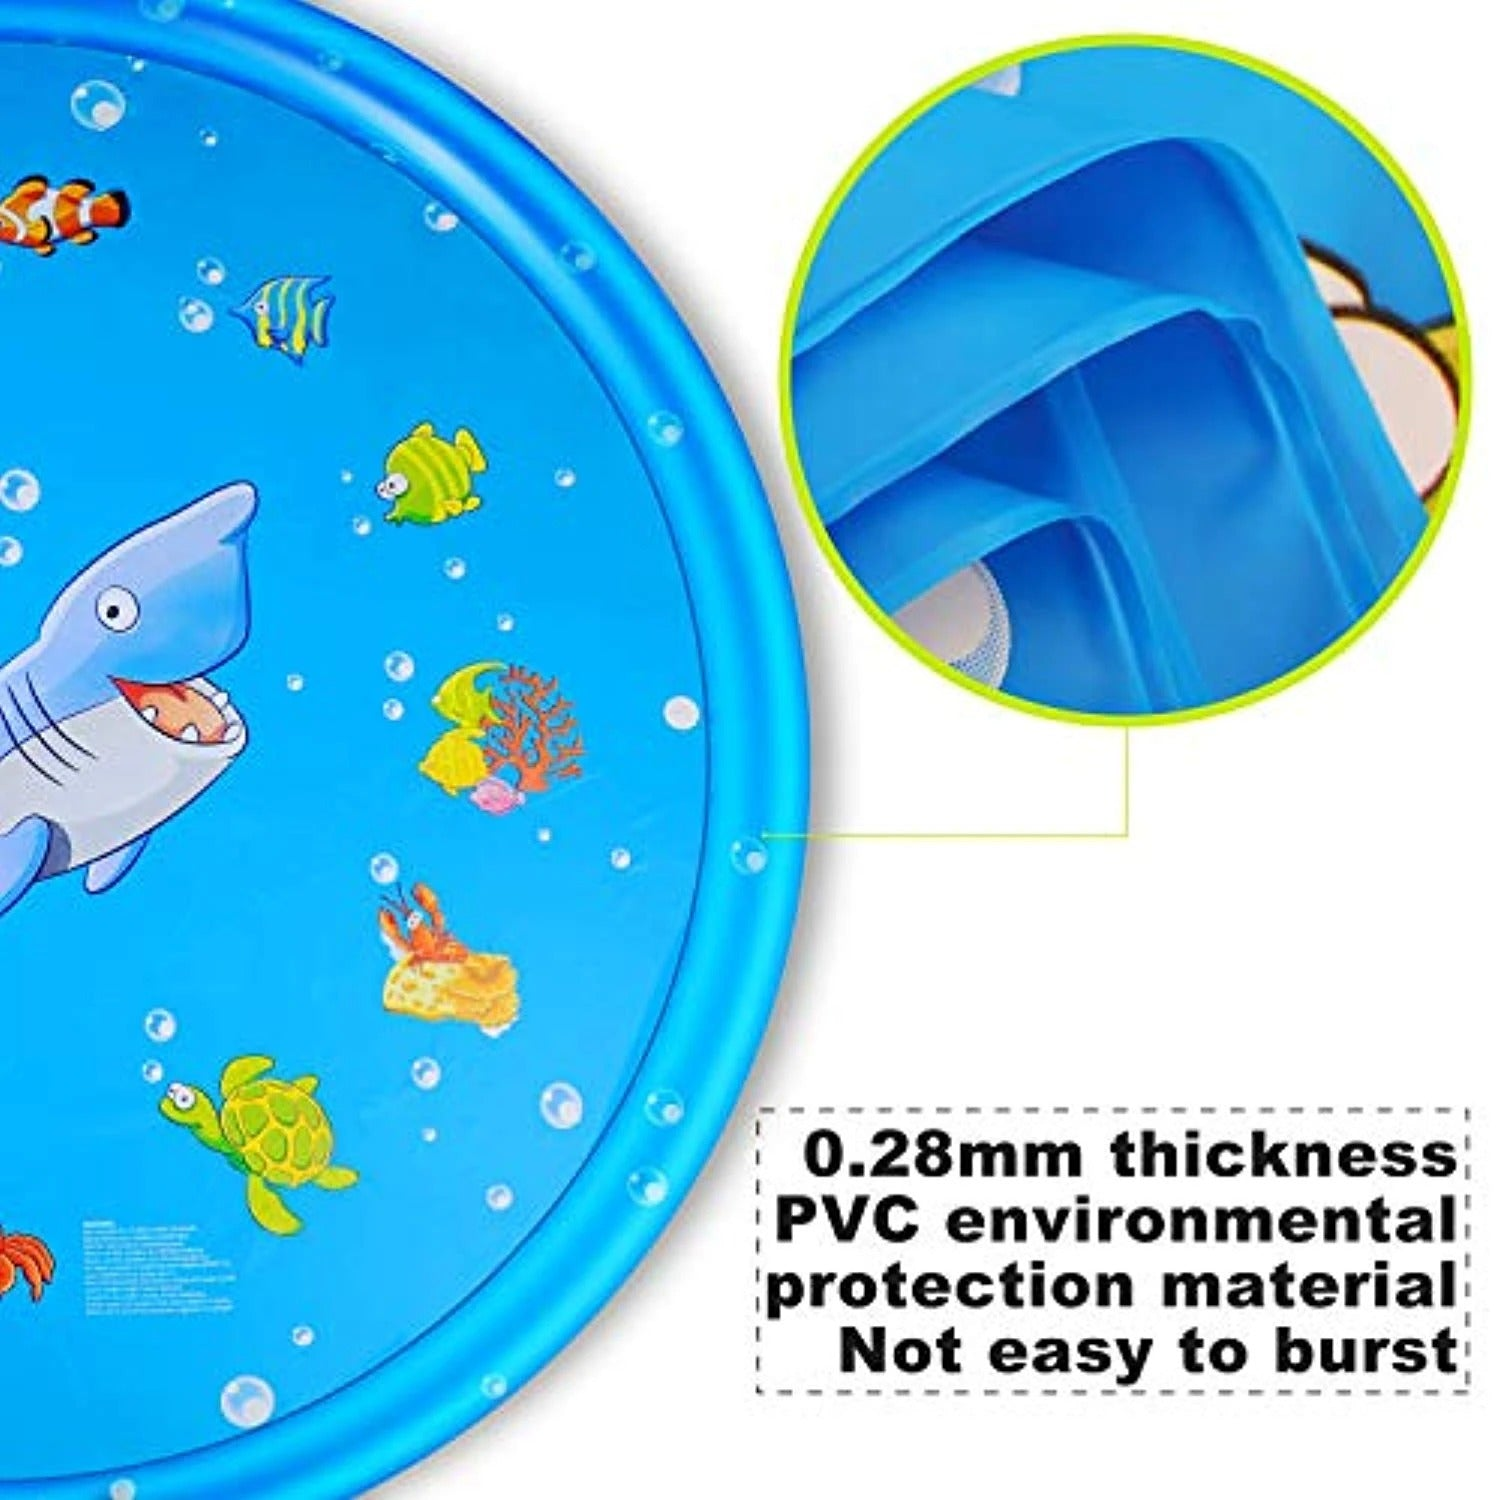 "Sprinkler pad & Splash Play Mat 68"" Toddler Water Toys Fun for 1 2 3 4 5 Year Old Boy Girl, Kids Outdoor Party Sprinkler Toy"